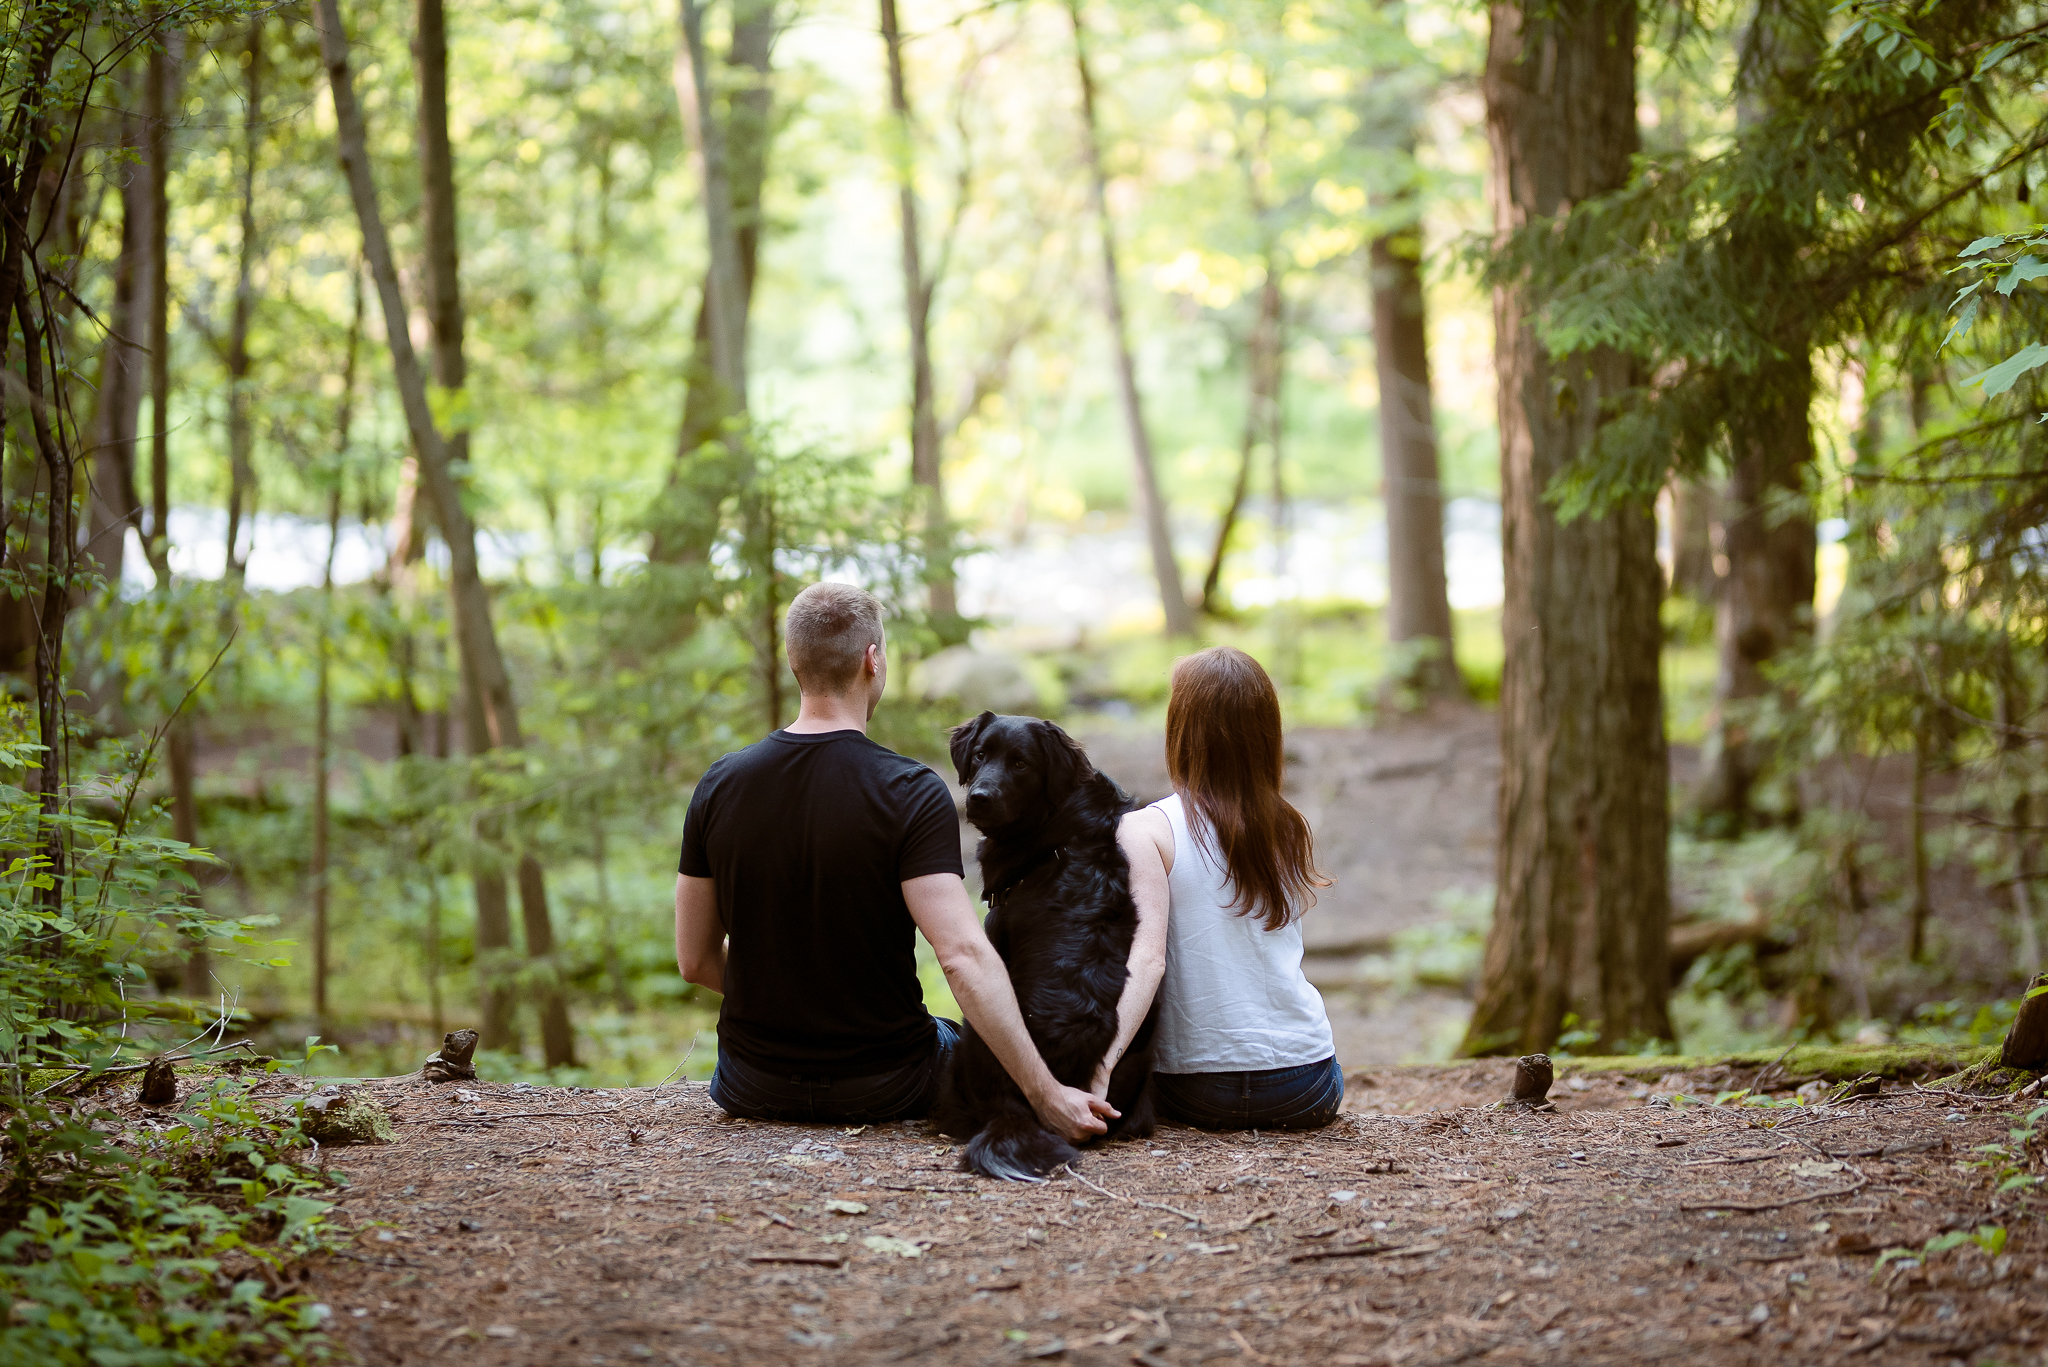 Couples356NaomiLuciennePhotography062019-Edit.jpg